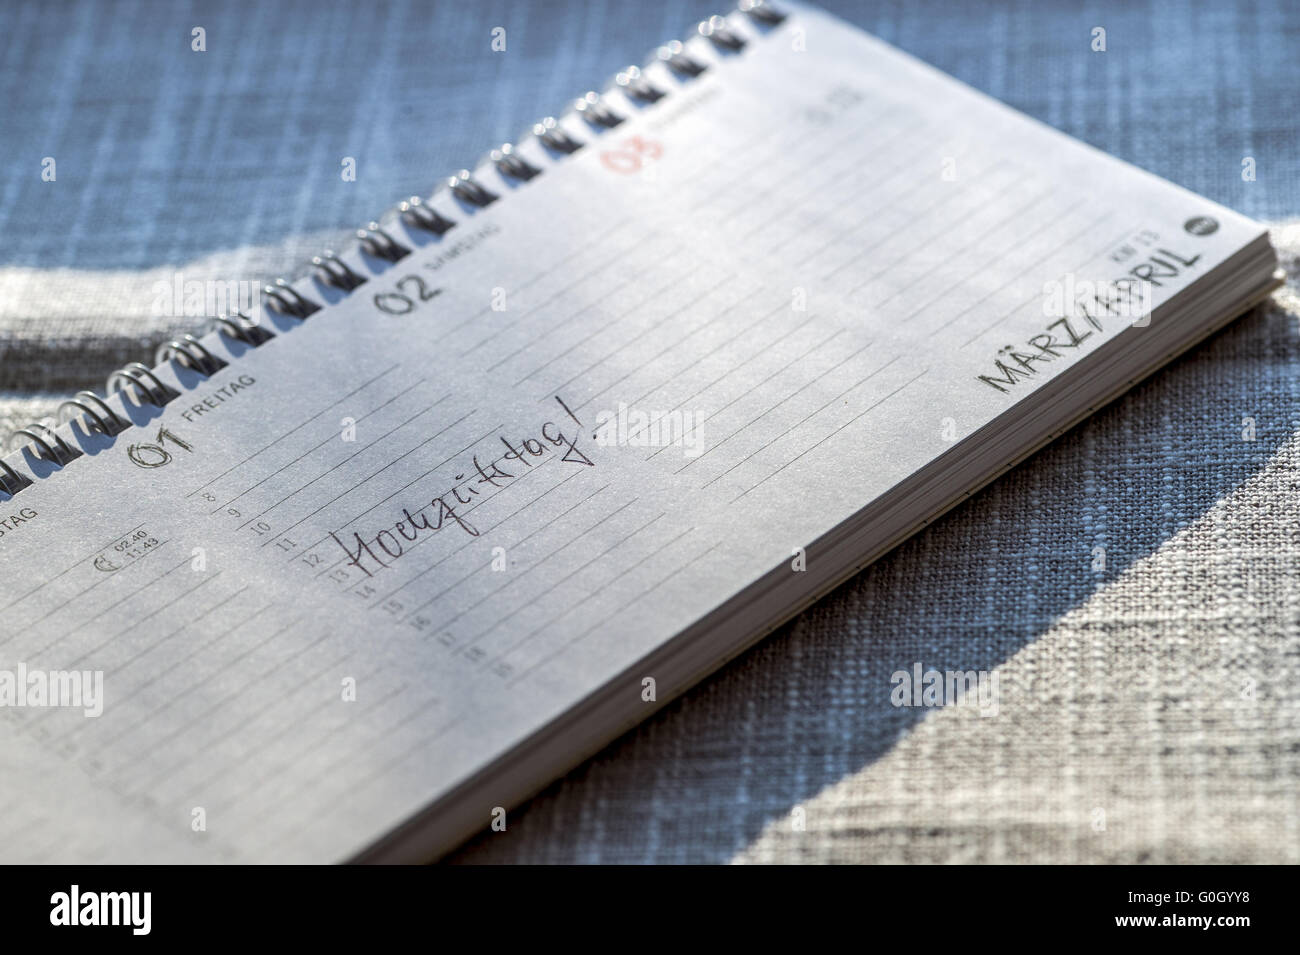 An opened desk calendar with the entry wedding. - Stock Image